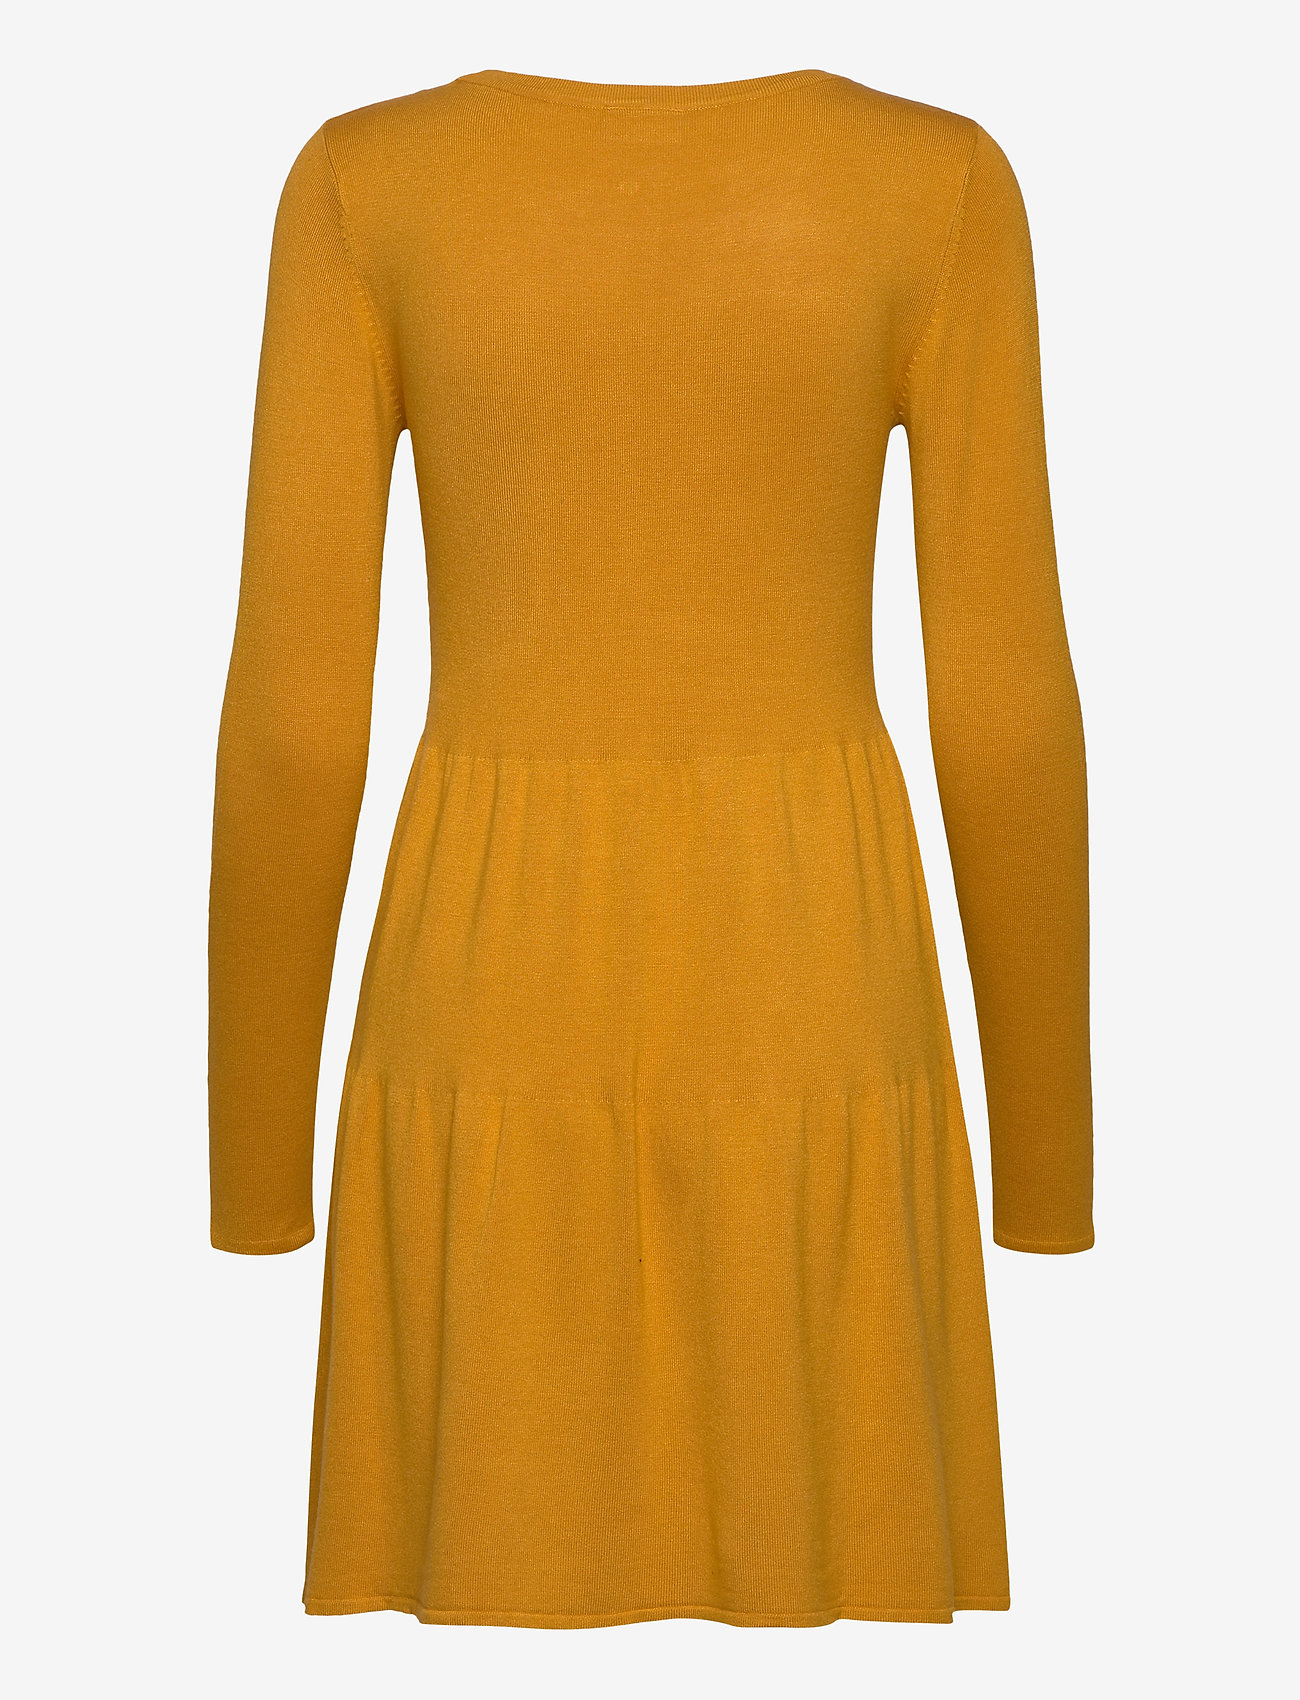 Vila - VIBOLONSIA KNIT L/S DRESS TB - midi dresses - mineral yellow - 1